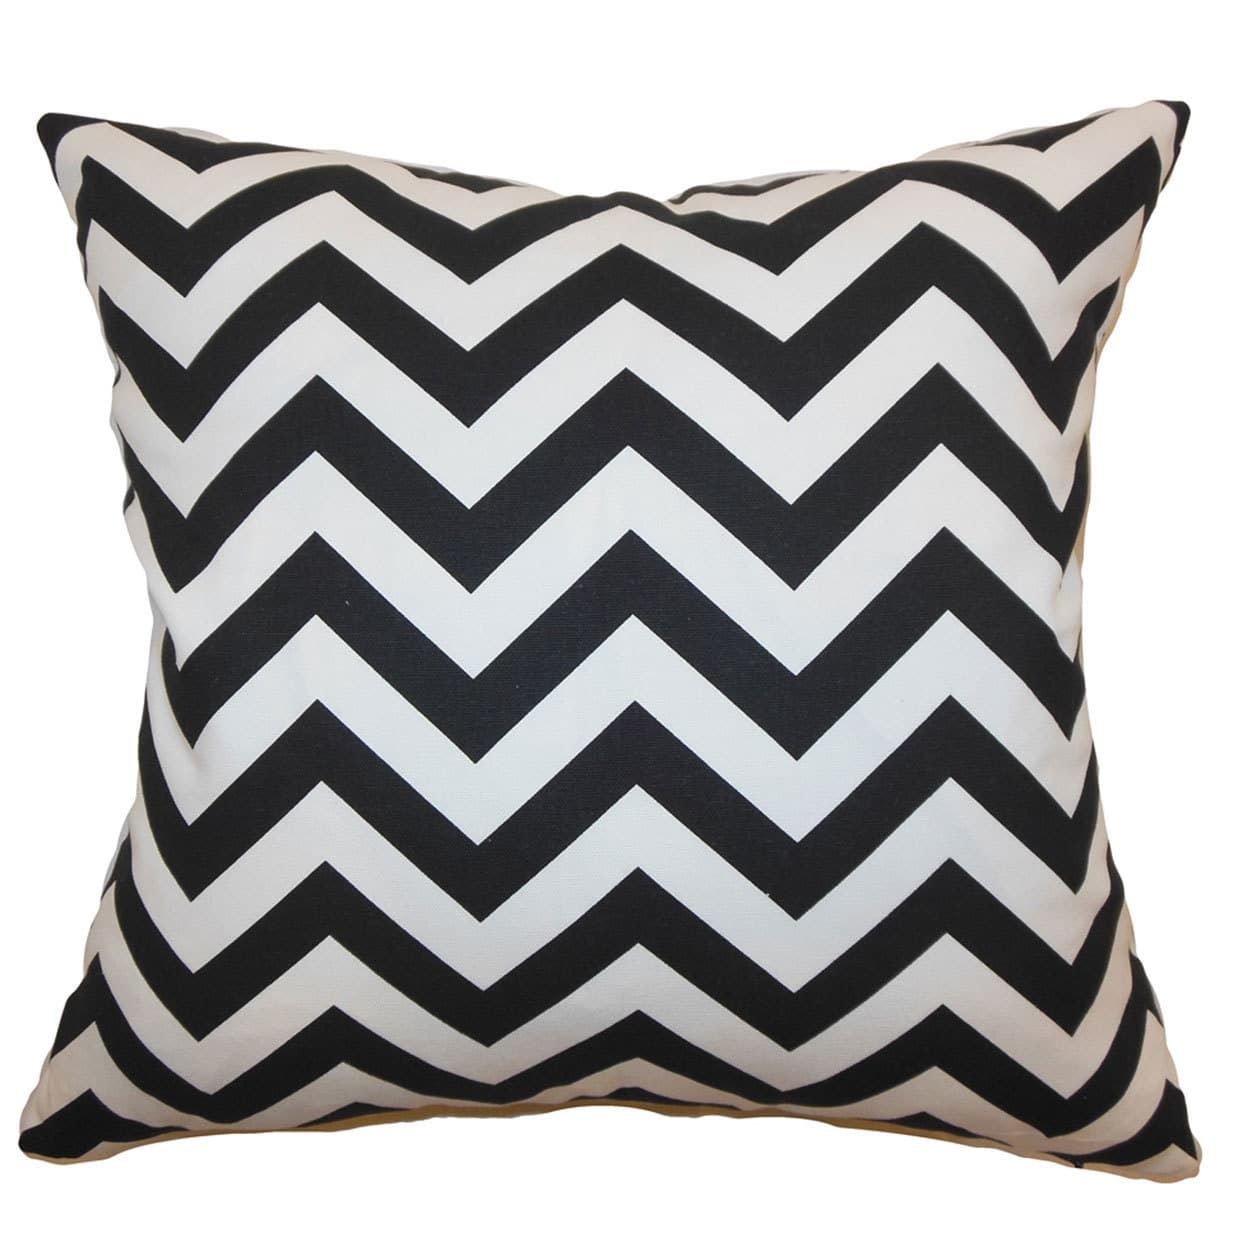 The Pillow Collection Xayabury Zigzag Euro Sham Black